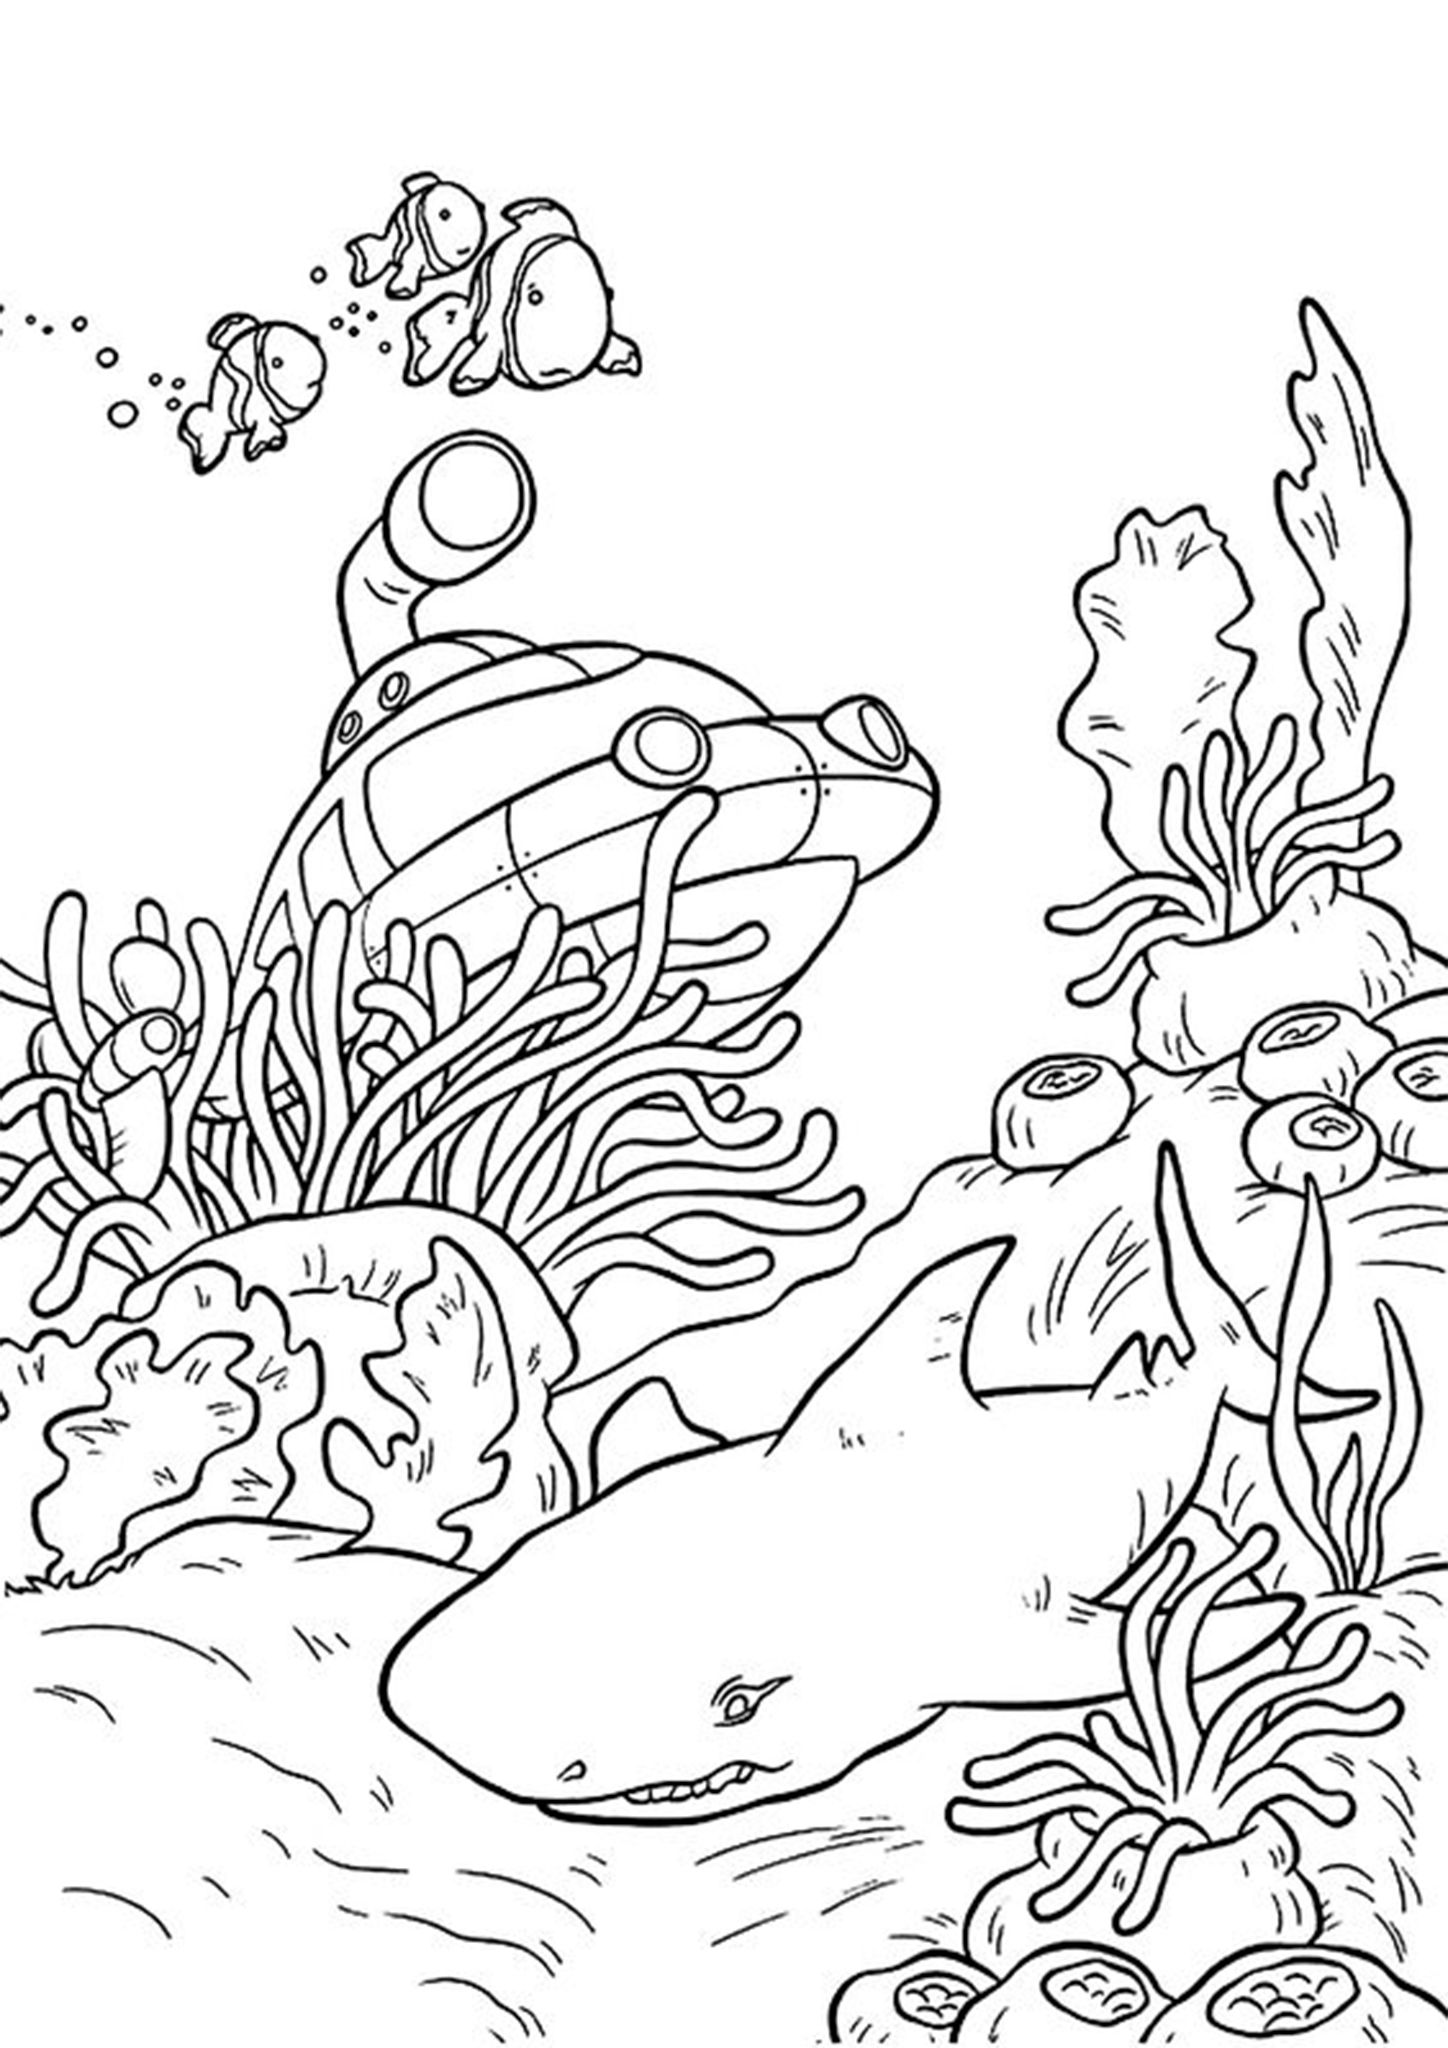 Free Easy To Print Shark Coloring Pages Shark Coloring Pages Ocean Coloring Pages Space Coloring Pages [ 2048 x 1448 Pixel ]